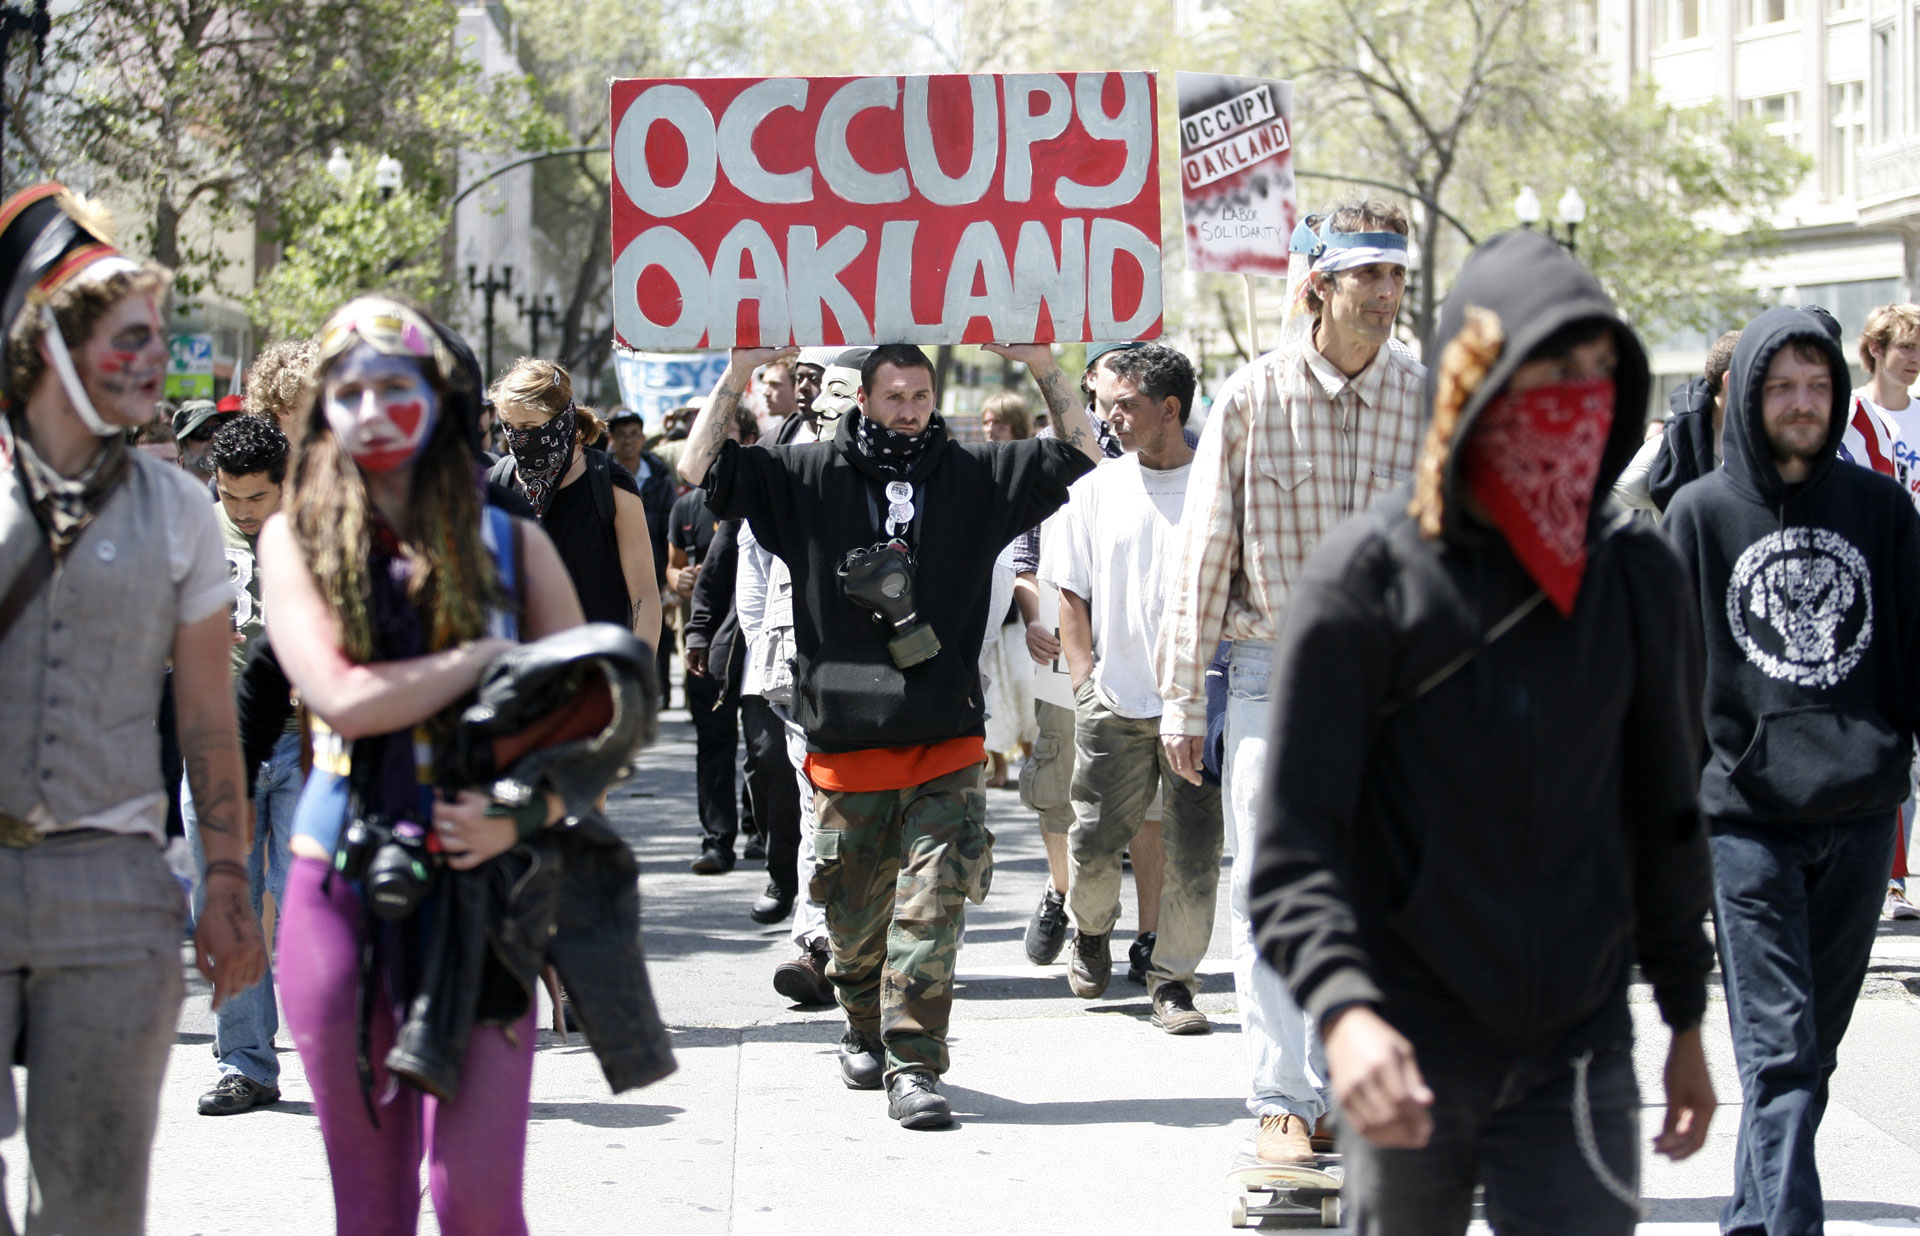 Occupy Oakland protesters march near City Hall in downtown Oakland during a May Day protest on May 1, 2012.